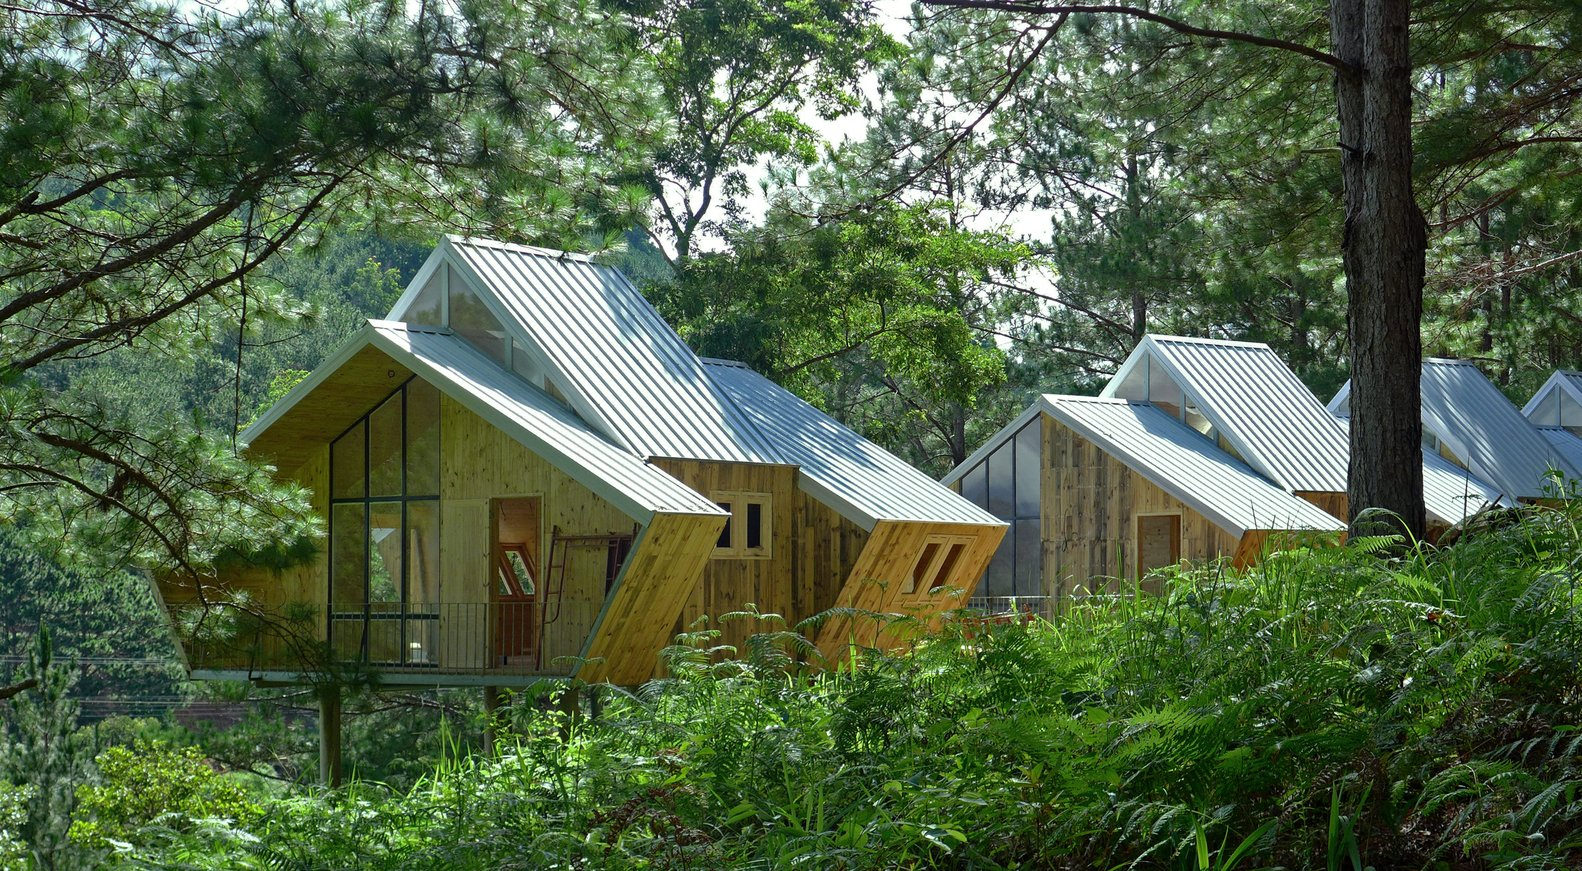 Exterior of Geometric Cabins by Mỹ An Architects